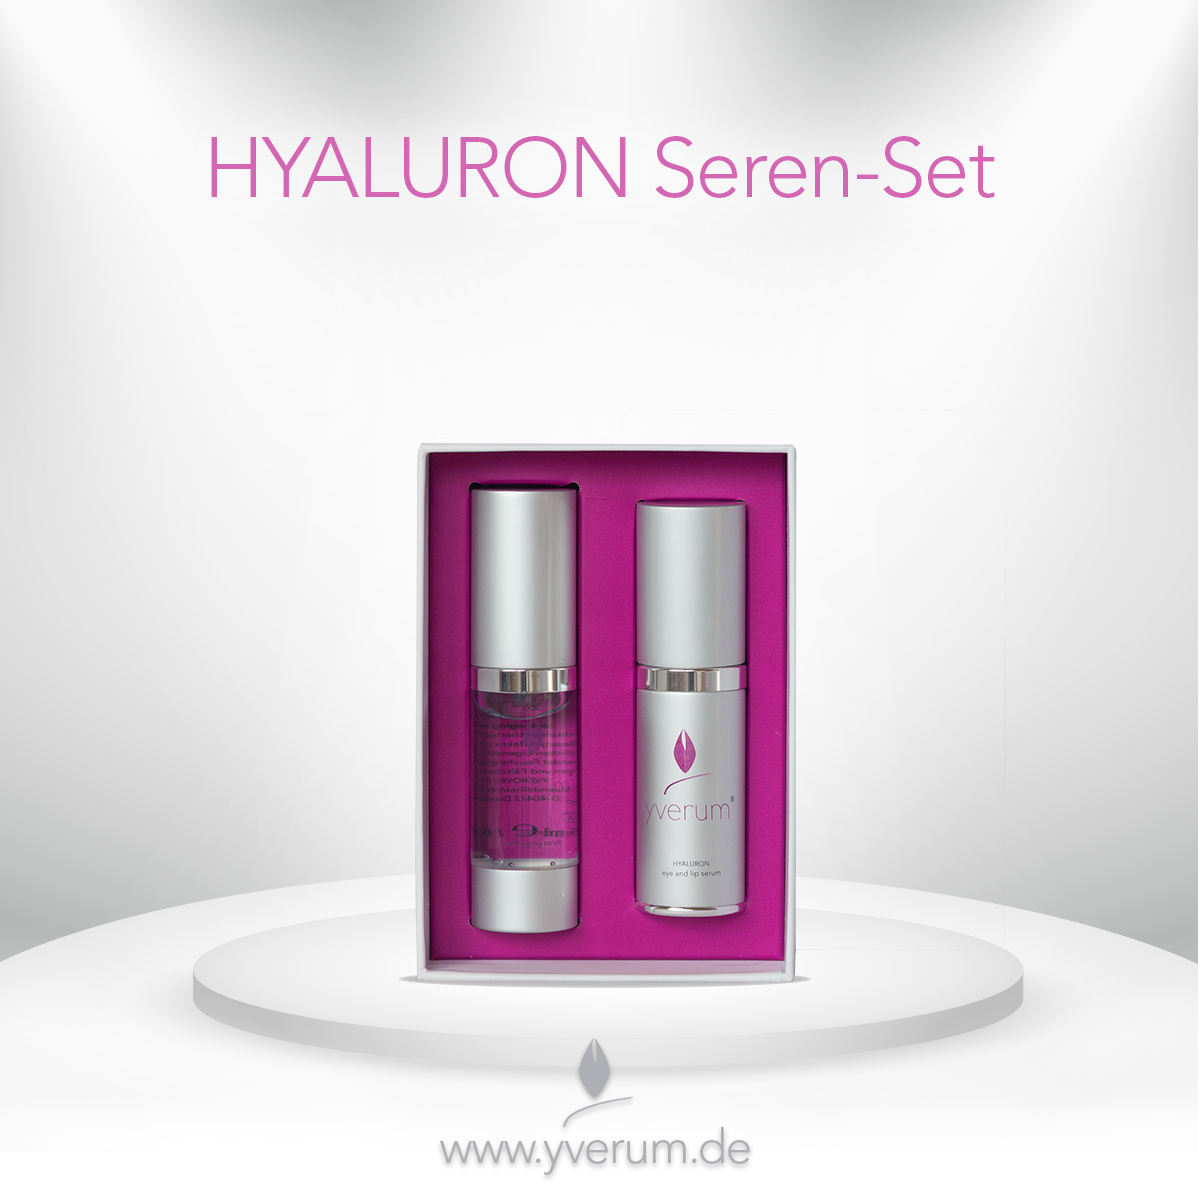 yverum HYALURON Seren-Set